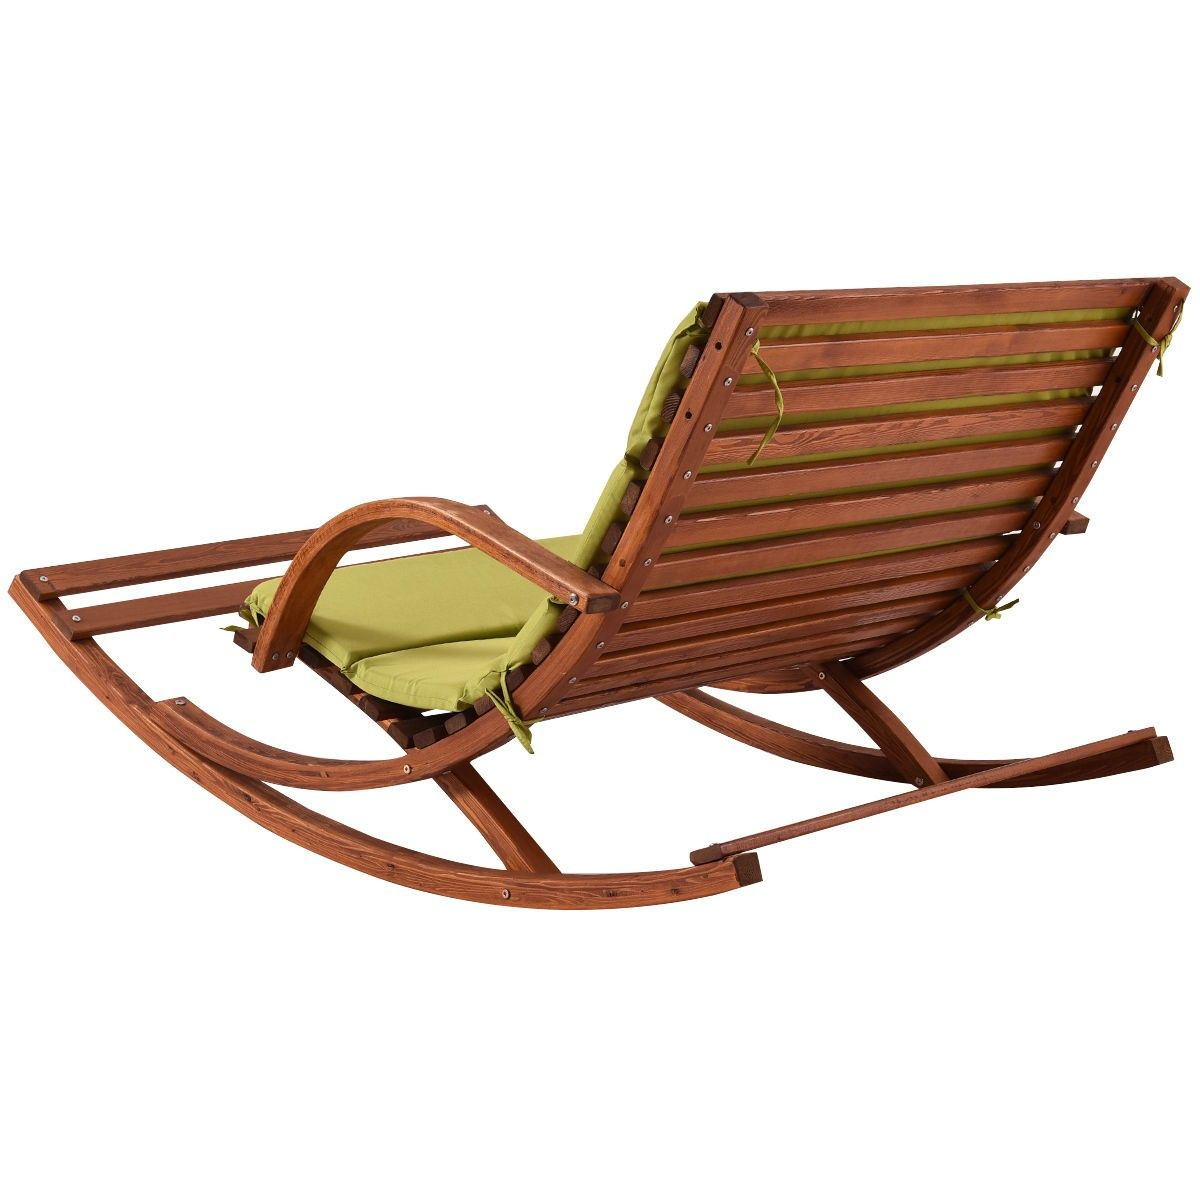 2 Person Lounge Chair Outdoor 2 Persons Rocking Wooden Lounge Chair With Cushion In 2019